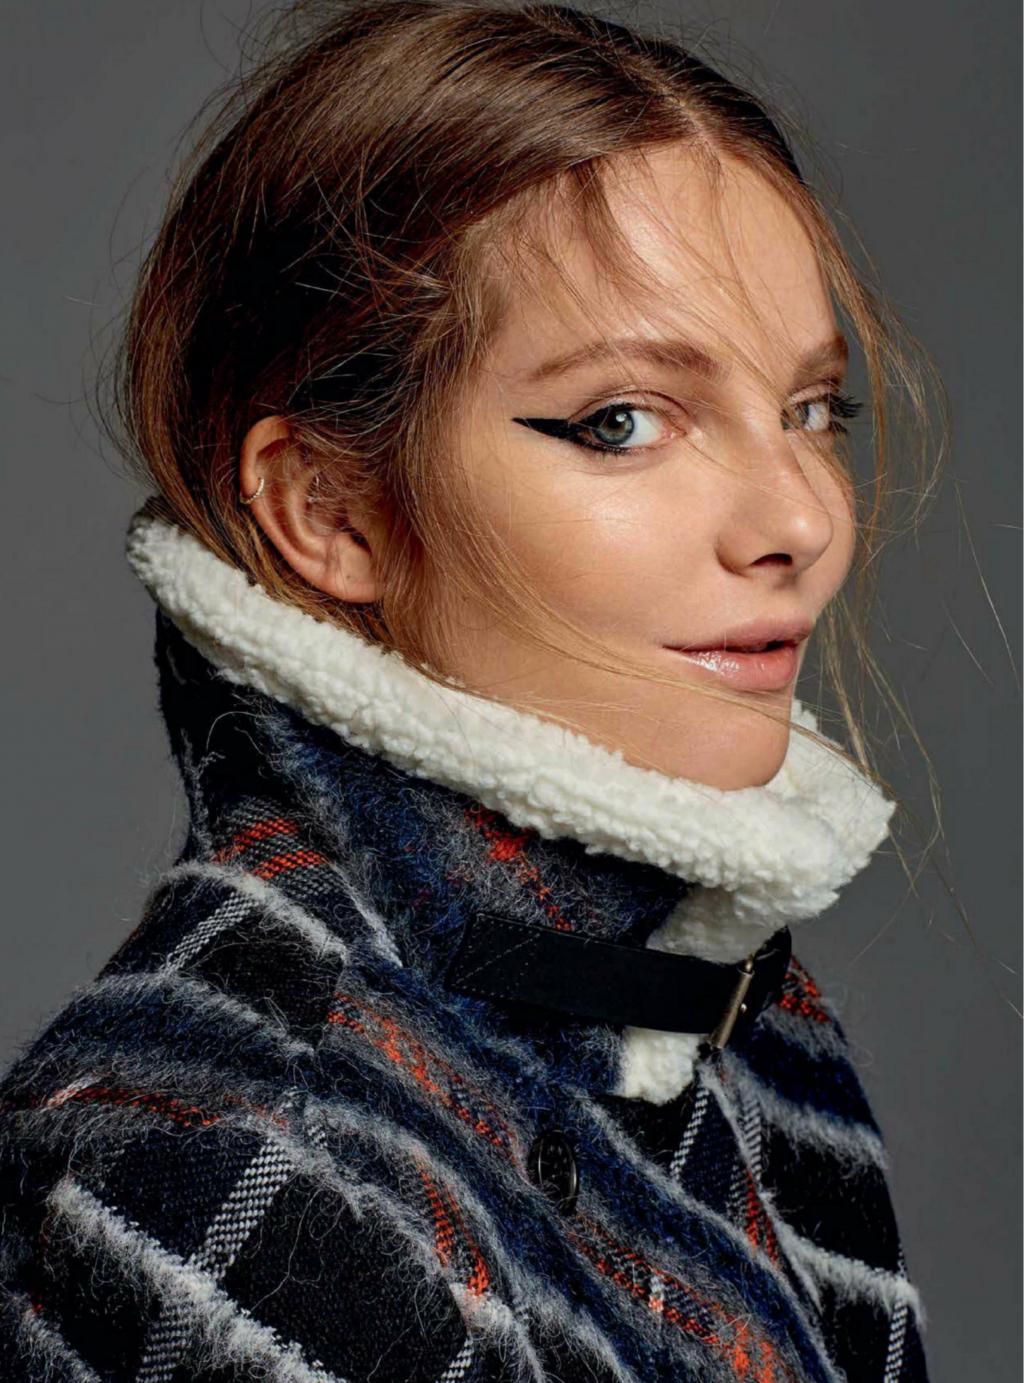 Eniko Mihalik - Big Wool Jumper - Looking Hot by crenk